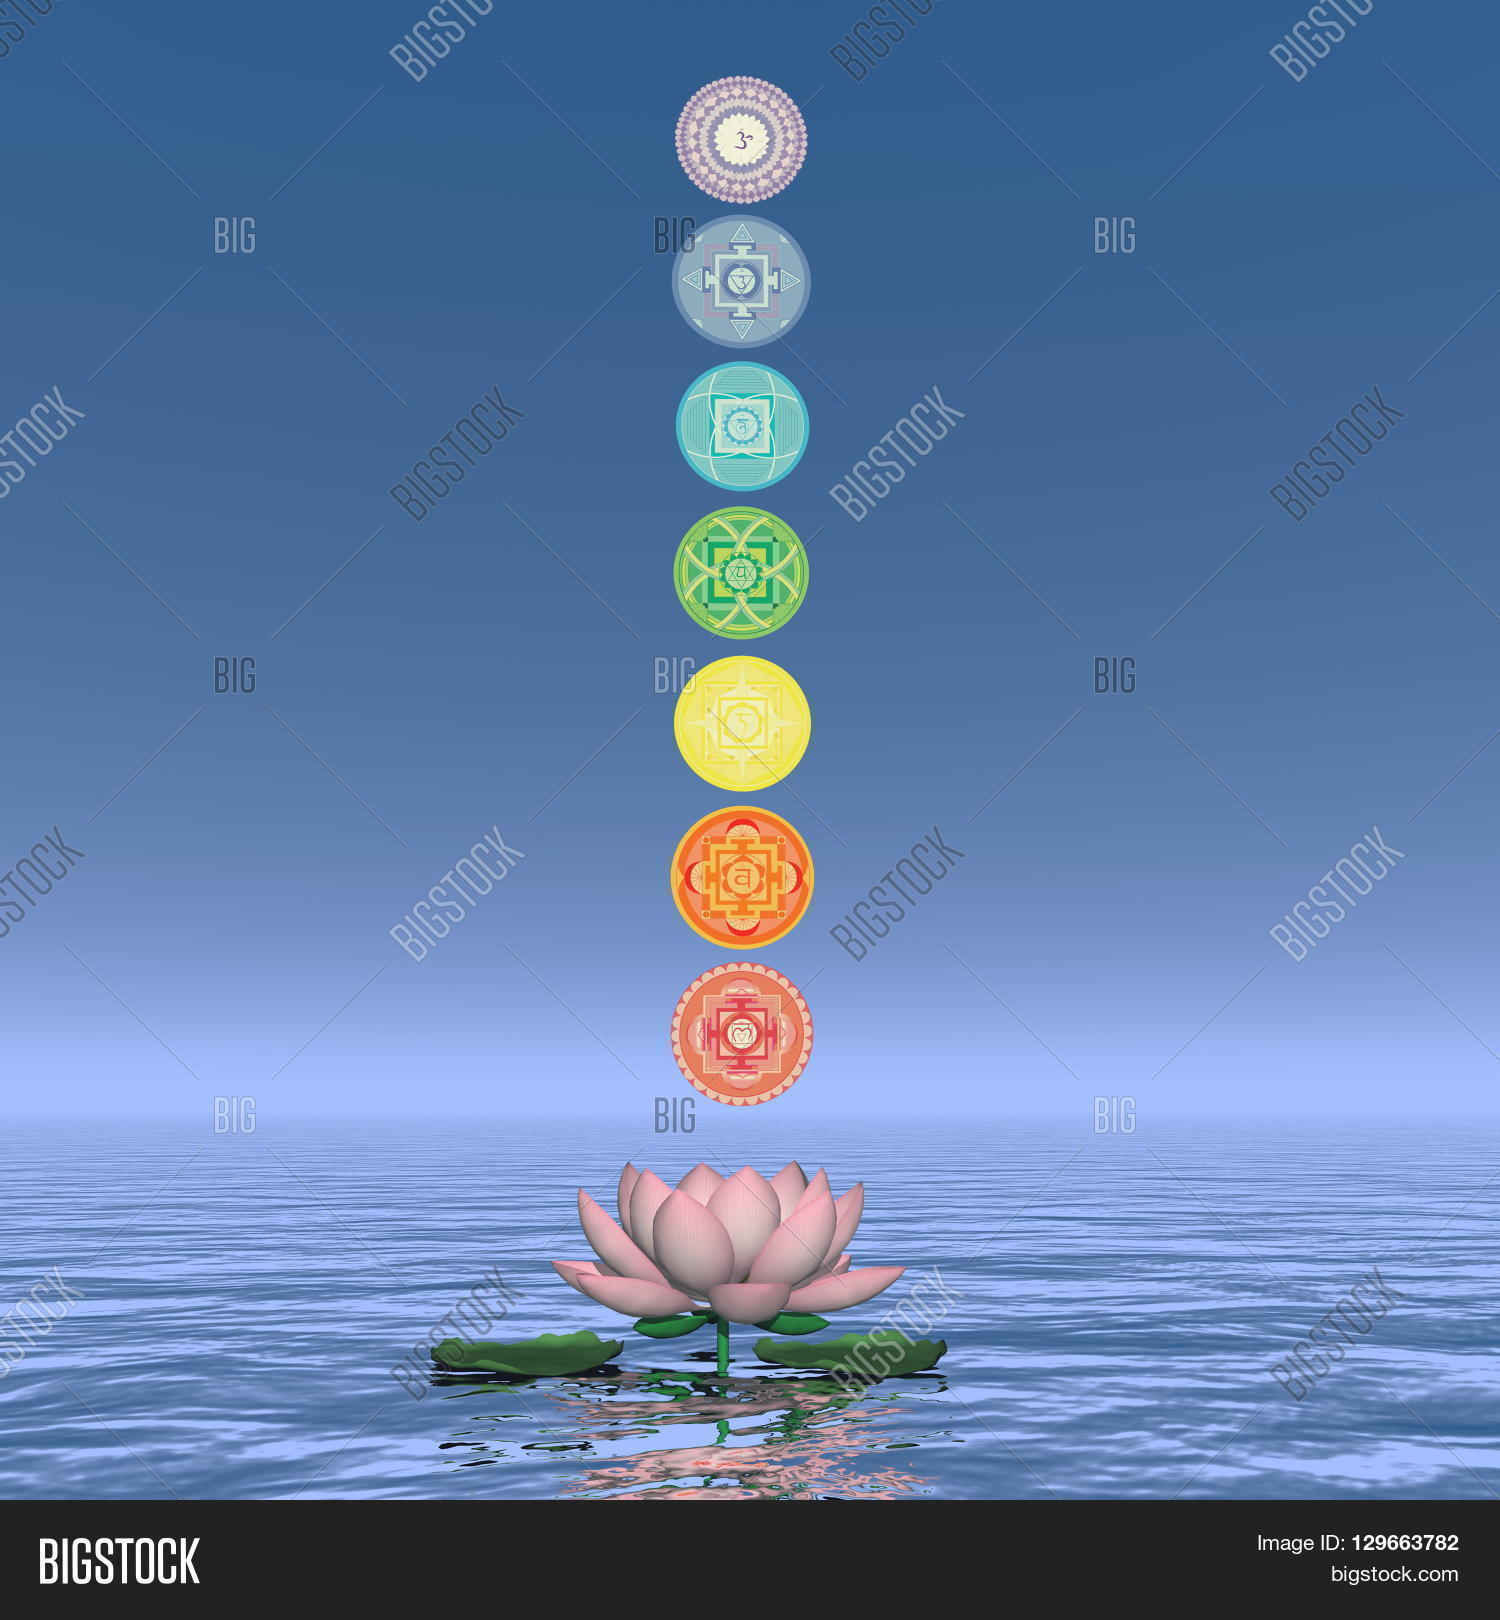 Seven chakra symbols image photo free trial bigstock seven chakra symbols column upon one lotus flower and water in blue background 3d render izmirmasajfo